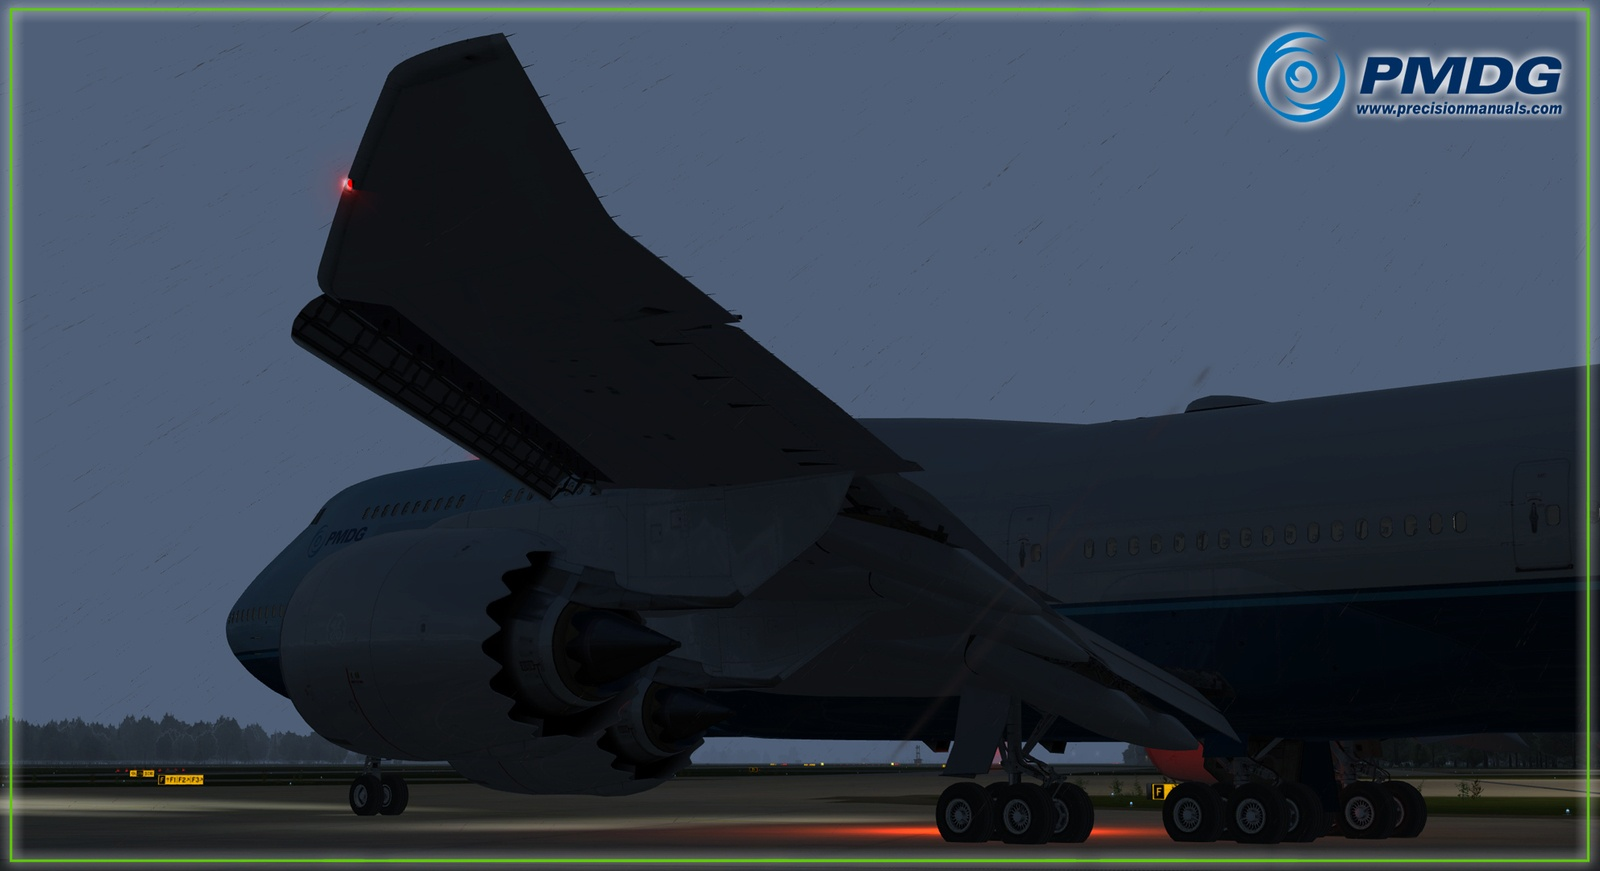 prepar3d / fsx] UPDATED: [EDITED INFO] PMDG Previews Further